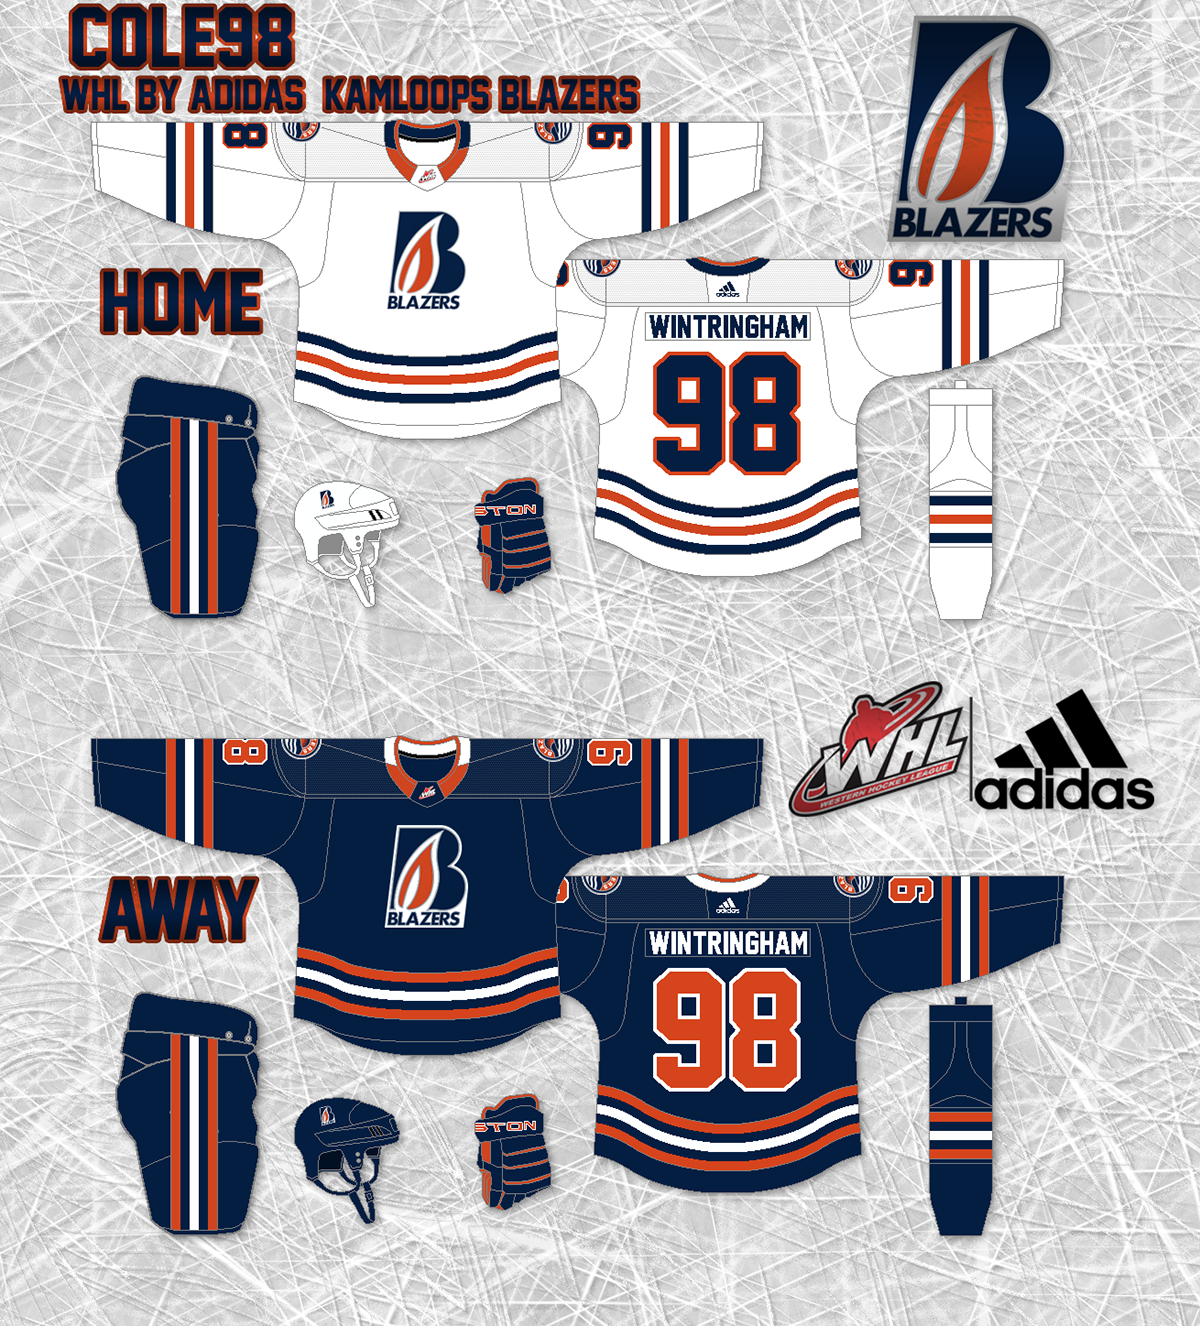 WHL Jerseys redone using Adidas on Behance e8bb295d0f2